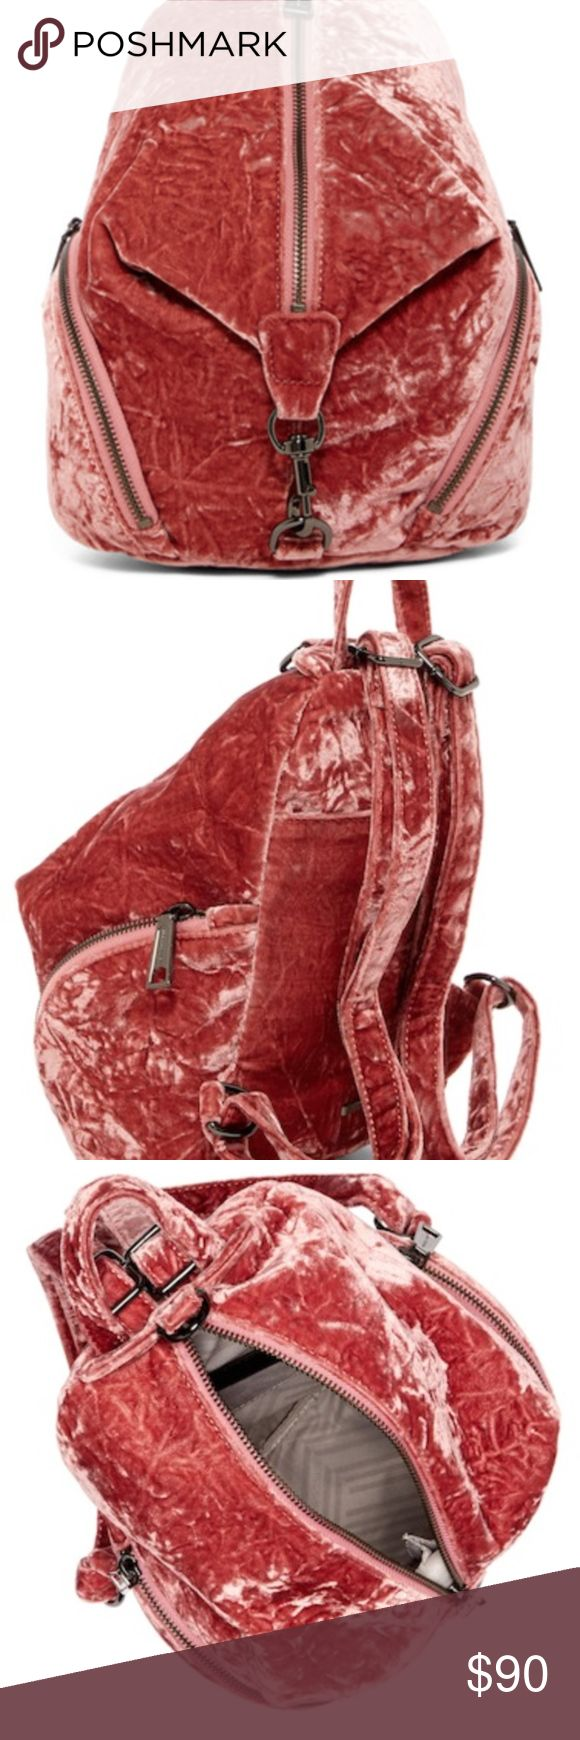 "Rebecca Minkoff medium velvet Julian backpack Single top handle - Adjustable shoulder straps - Zip front closure - Exterior features 2 side zip pockets - Interior features 1 slip pocket - Dust bag included - Approx. 10"" H x 8"" W x 5"" D - Approx. 2.5"" handle drop, 7-14"" strap drop Velvet exterior, textile lining Rebecca Minkoff Bags Backpacks"